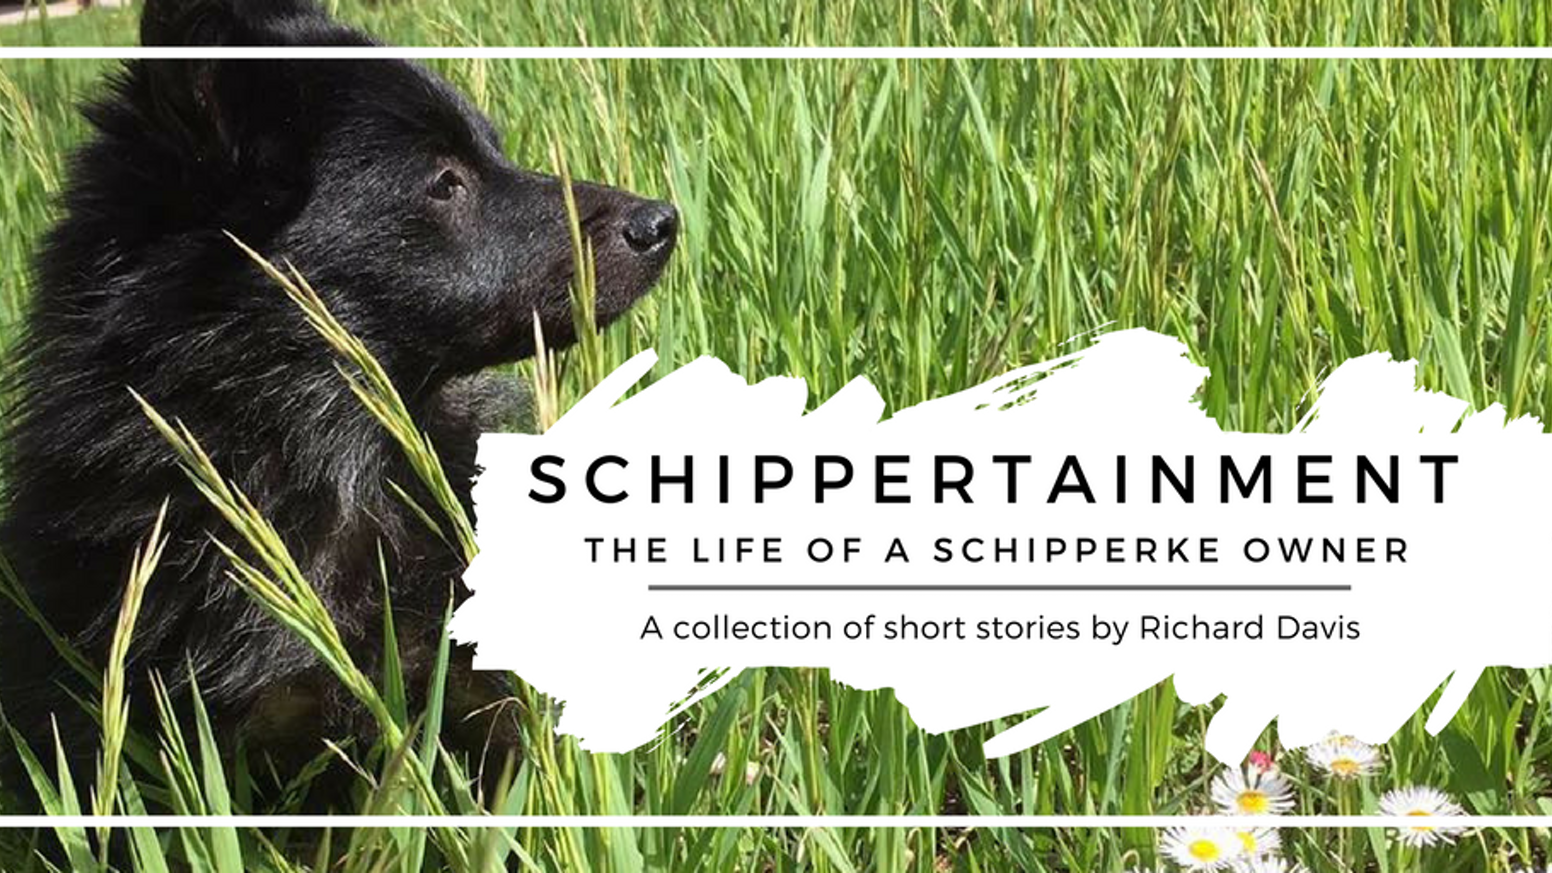 schippertainment the life of a schipperke owner by amy curran